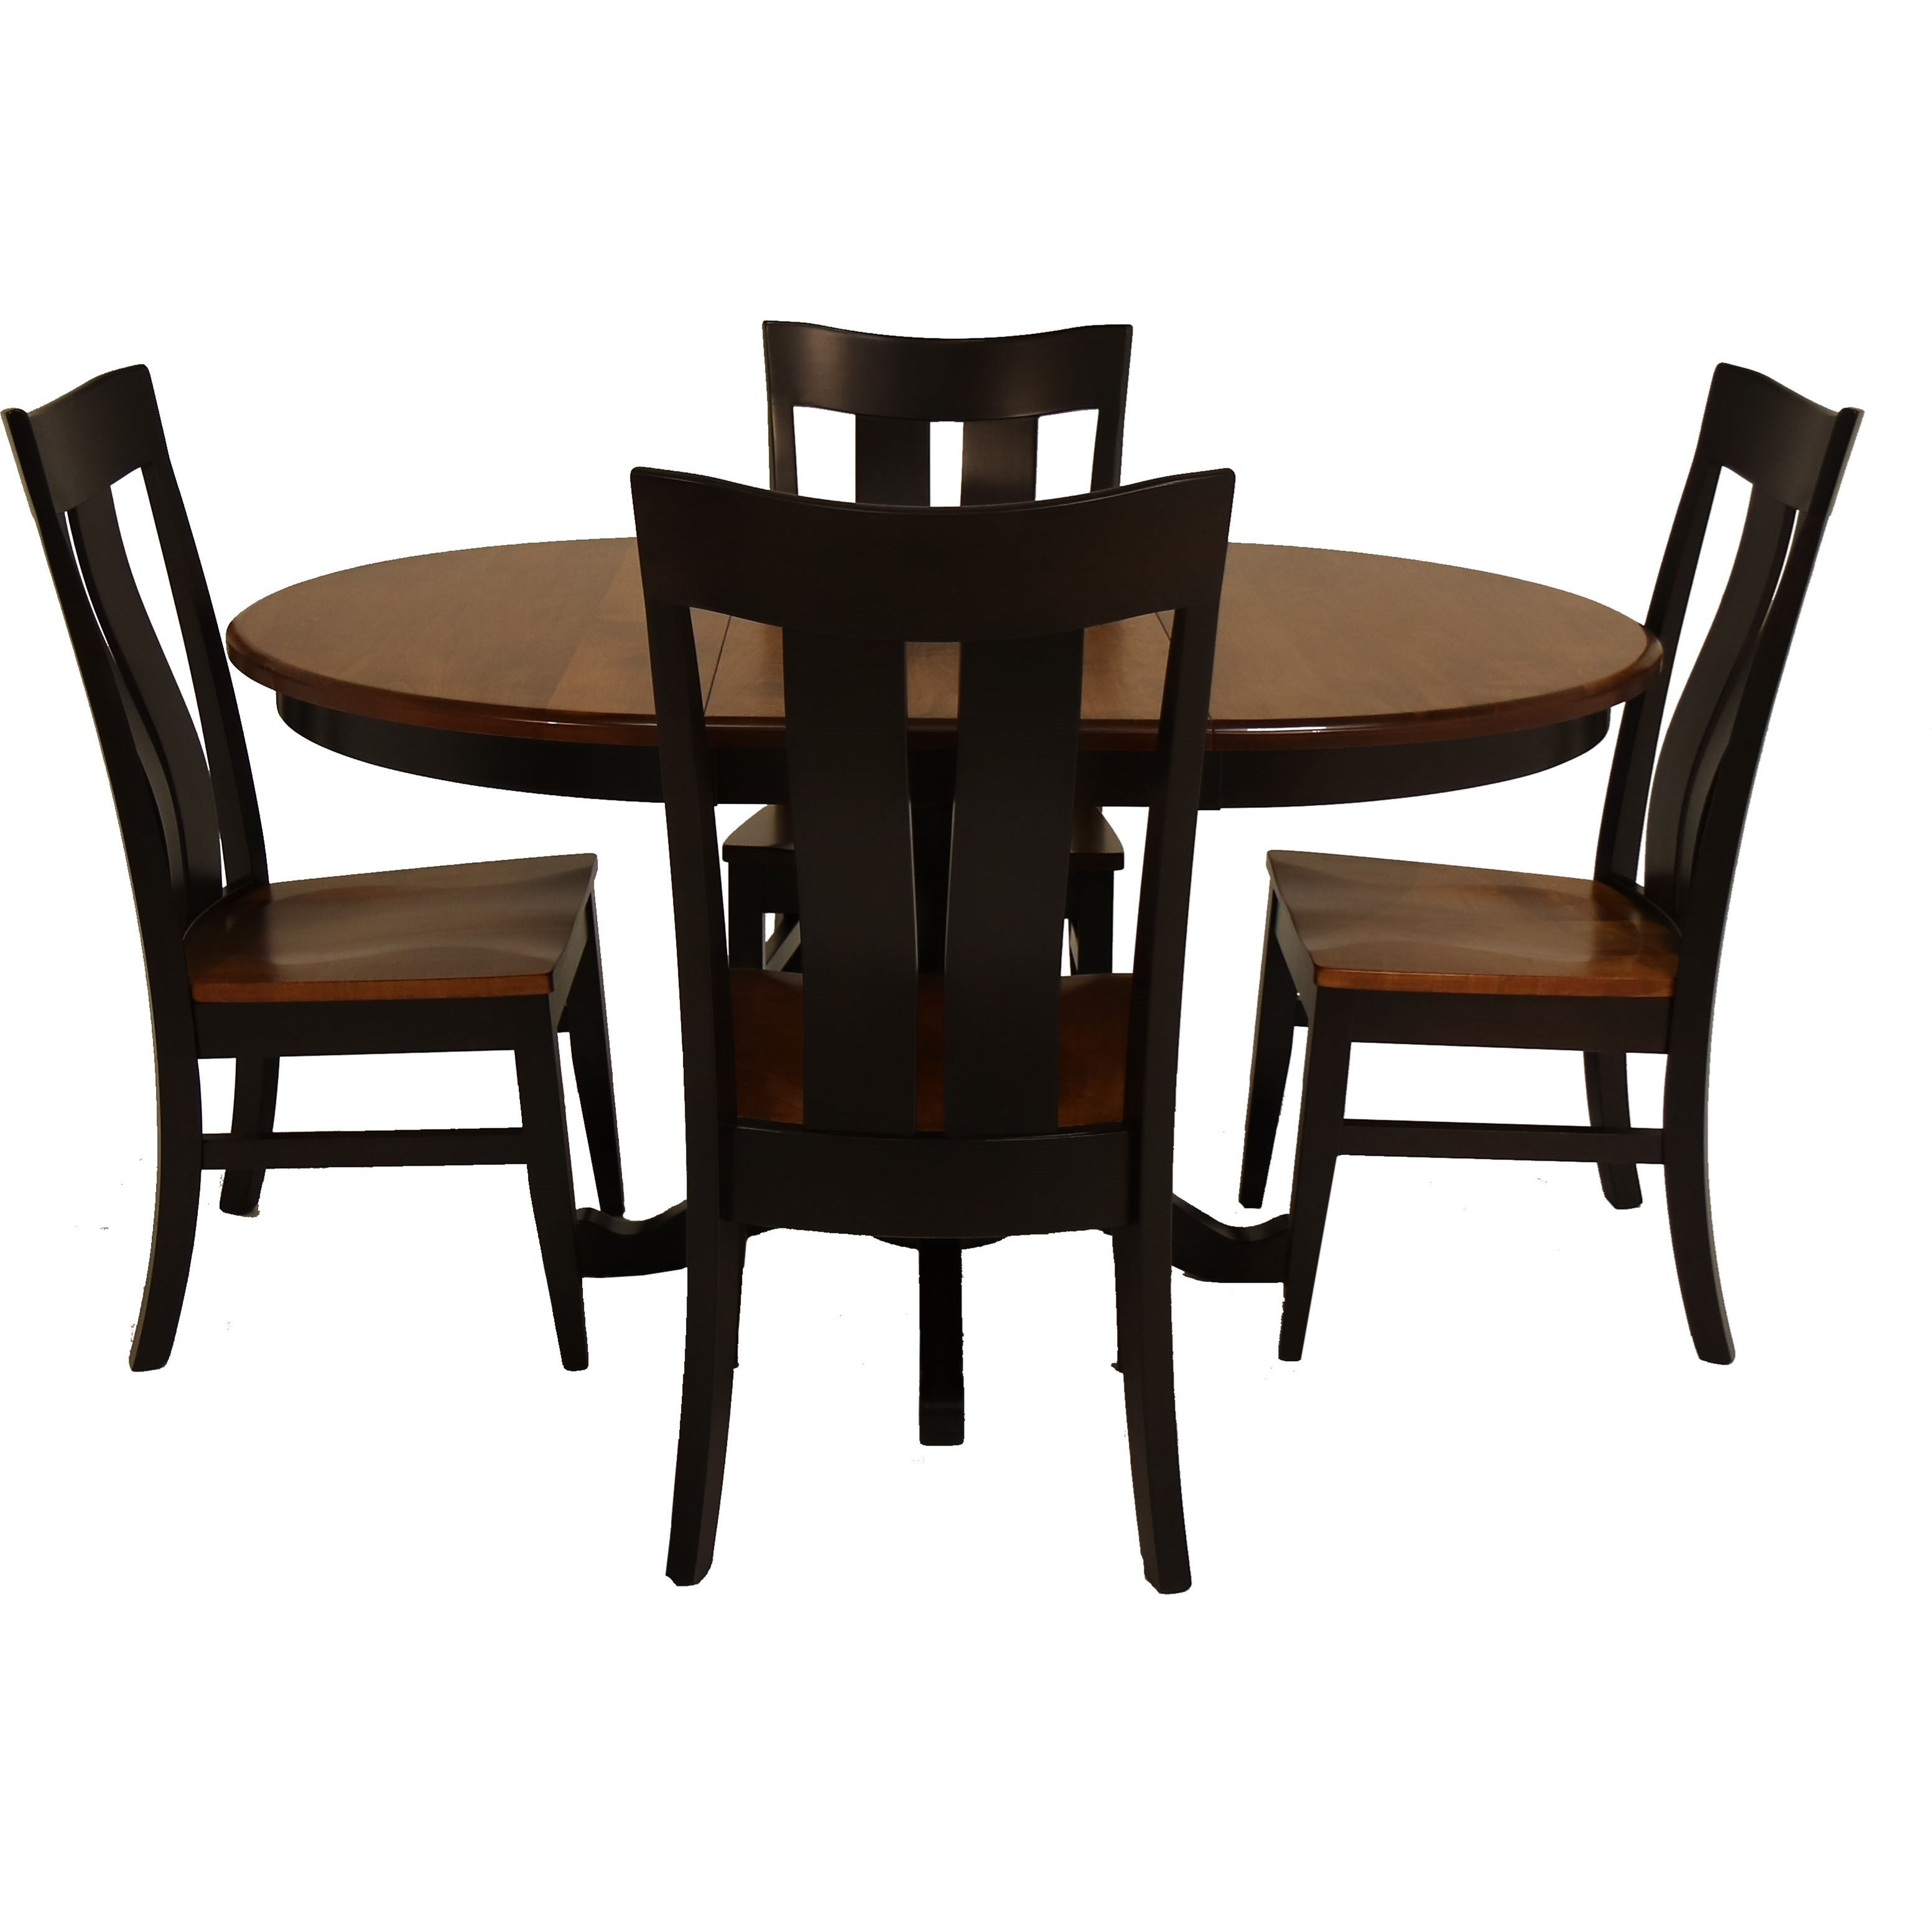 Amish Essentials 5 Piece Rebecca Table and Florence Chair Set by Archbold Furniture at Steger's Furniture